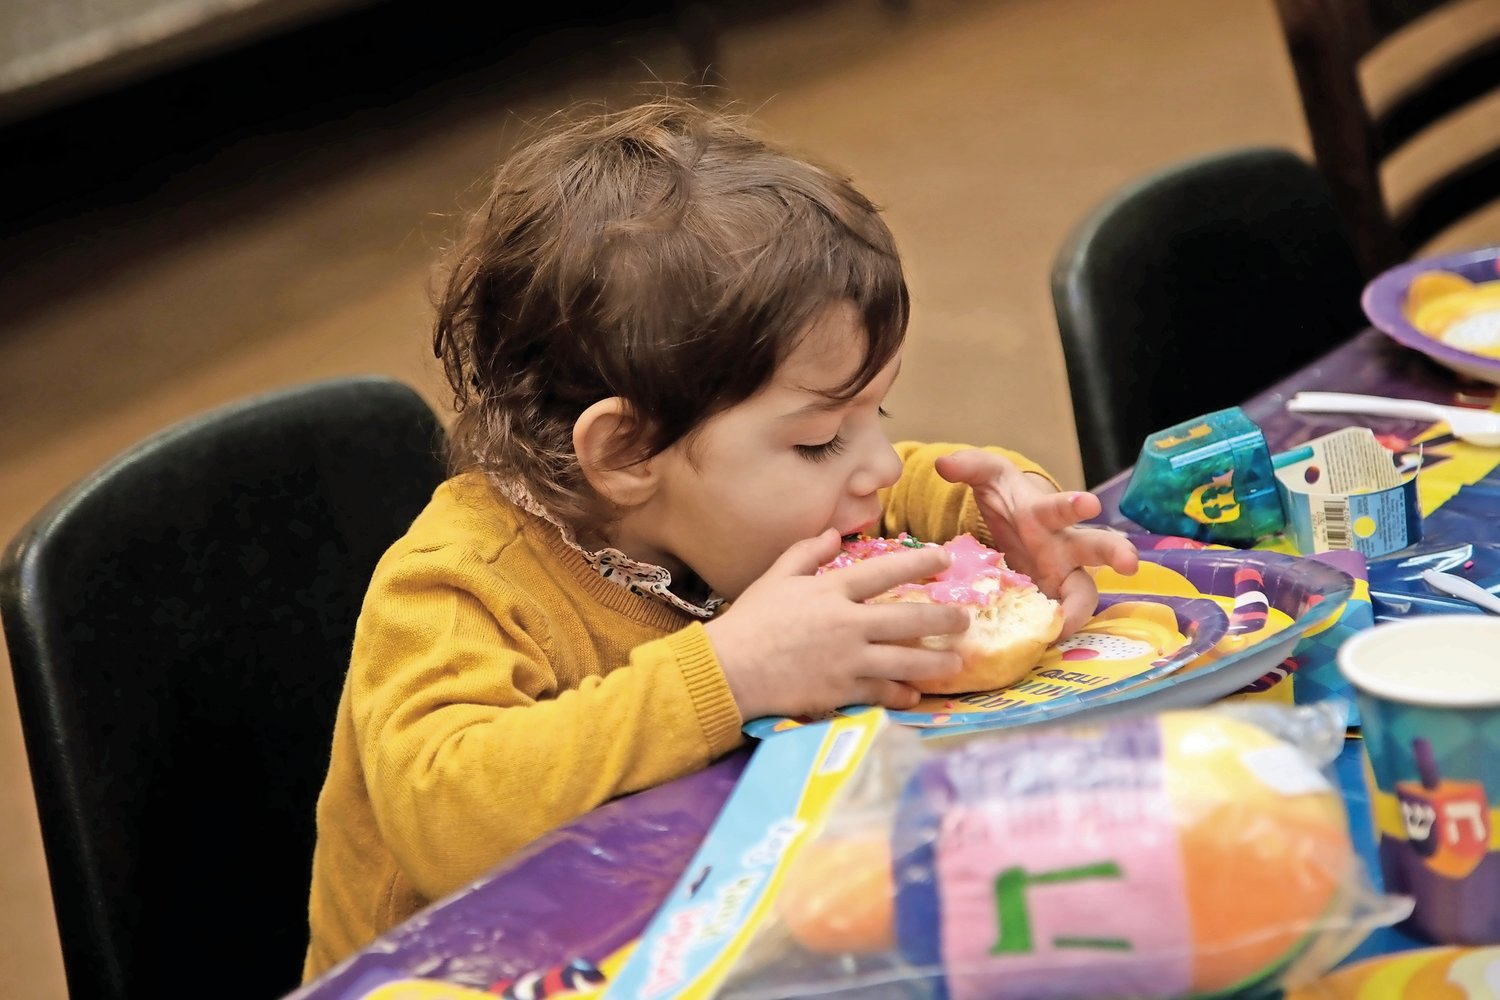 Three-year-old Miriam Ross enjoyed a sweet treat.